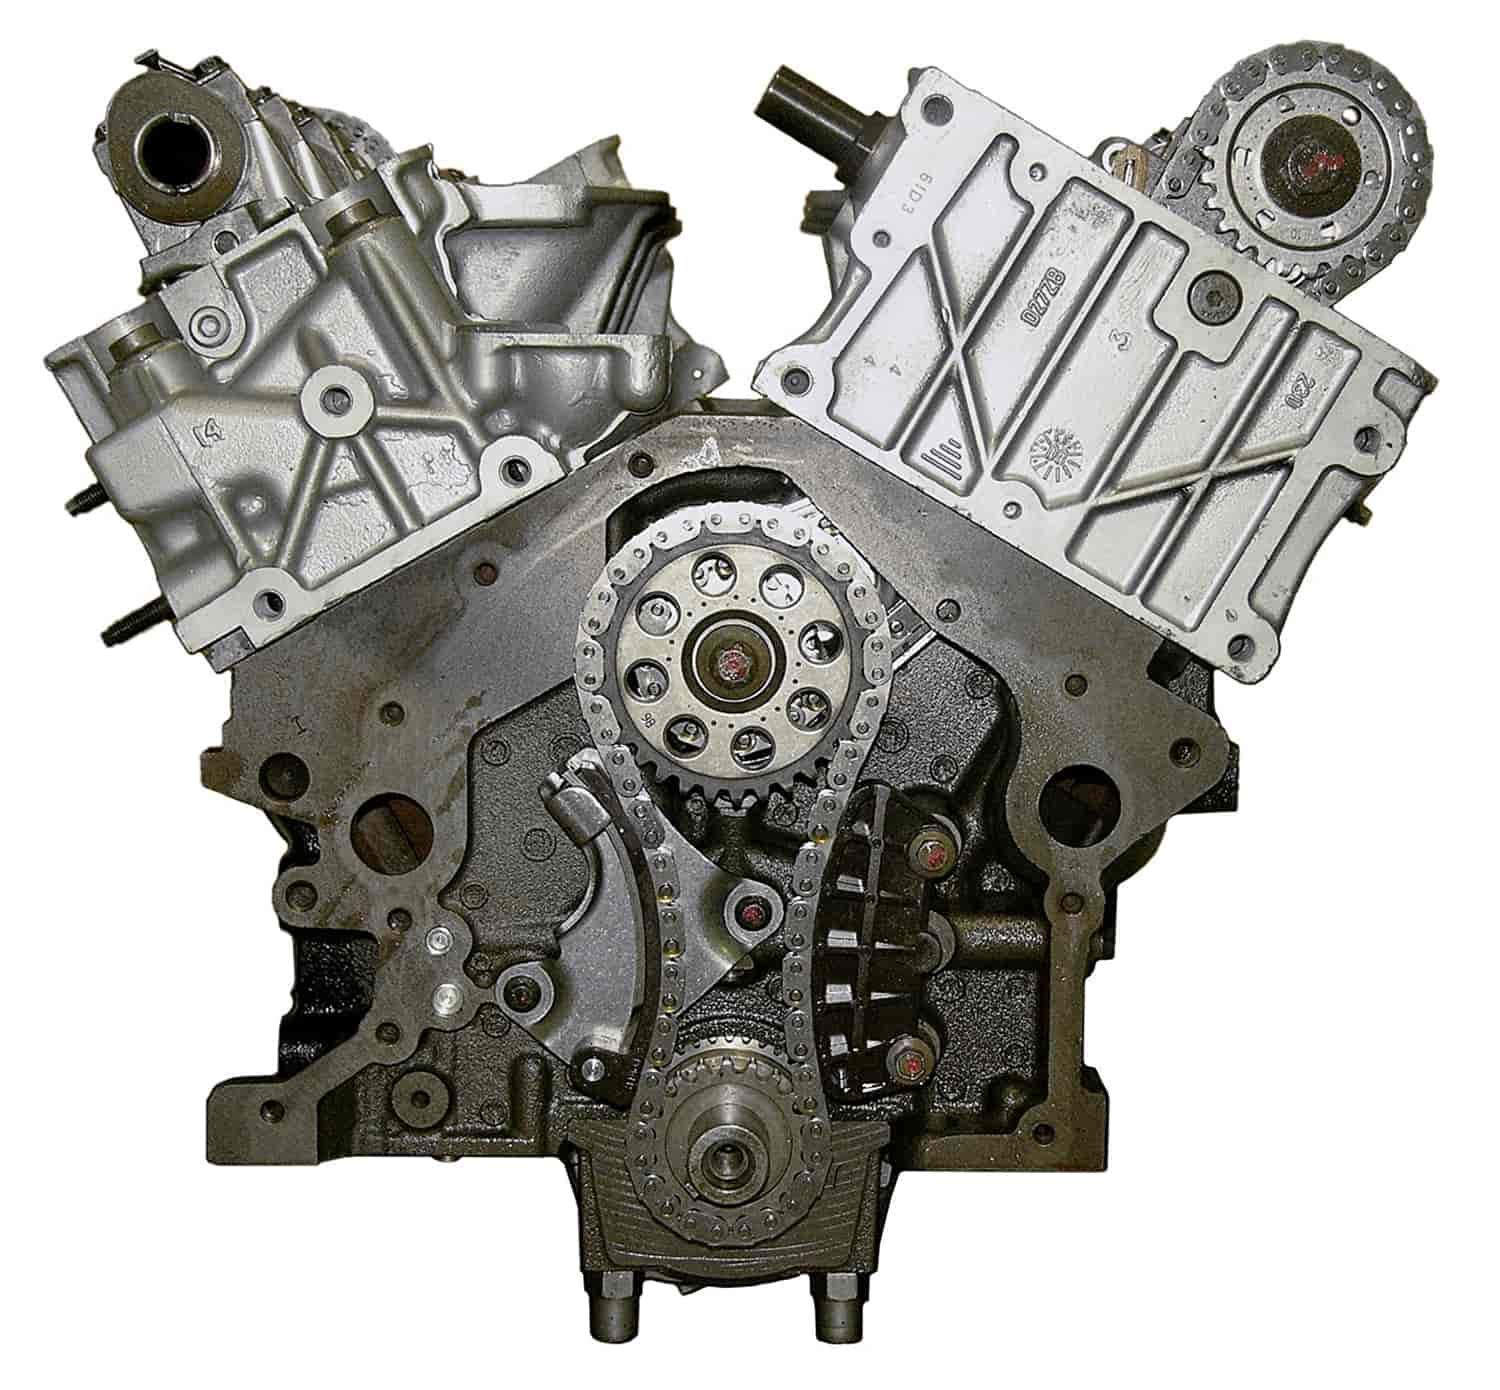 Atk Engines Dft6 Remanufactured Crate Engine For 1997